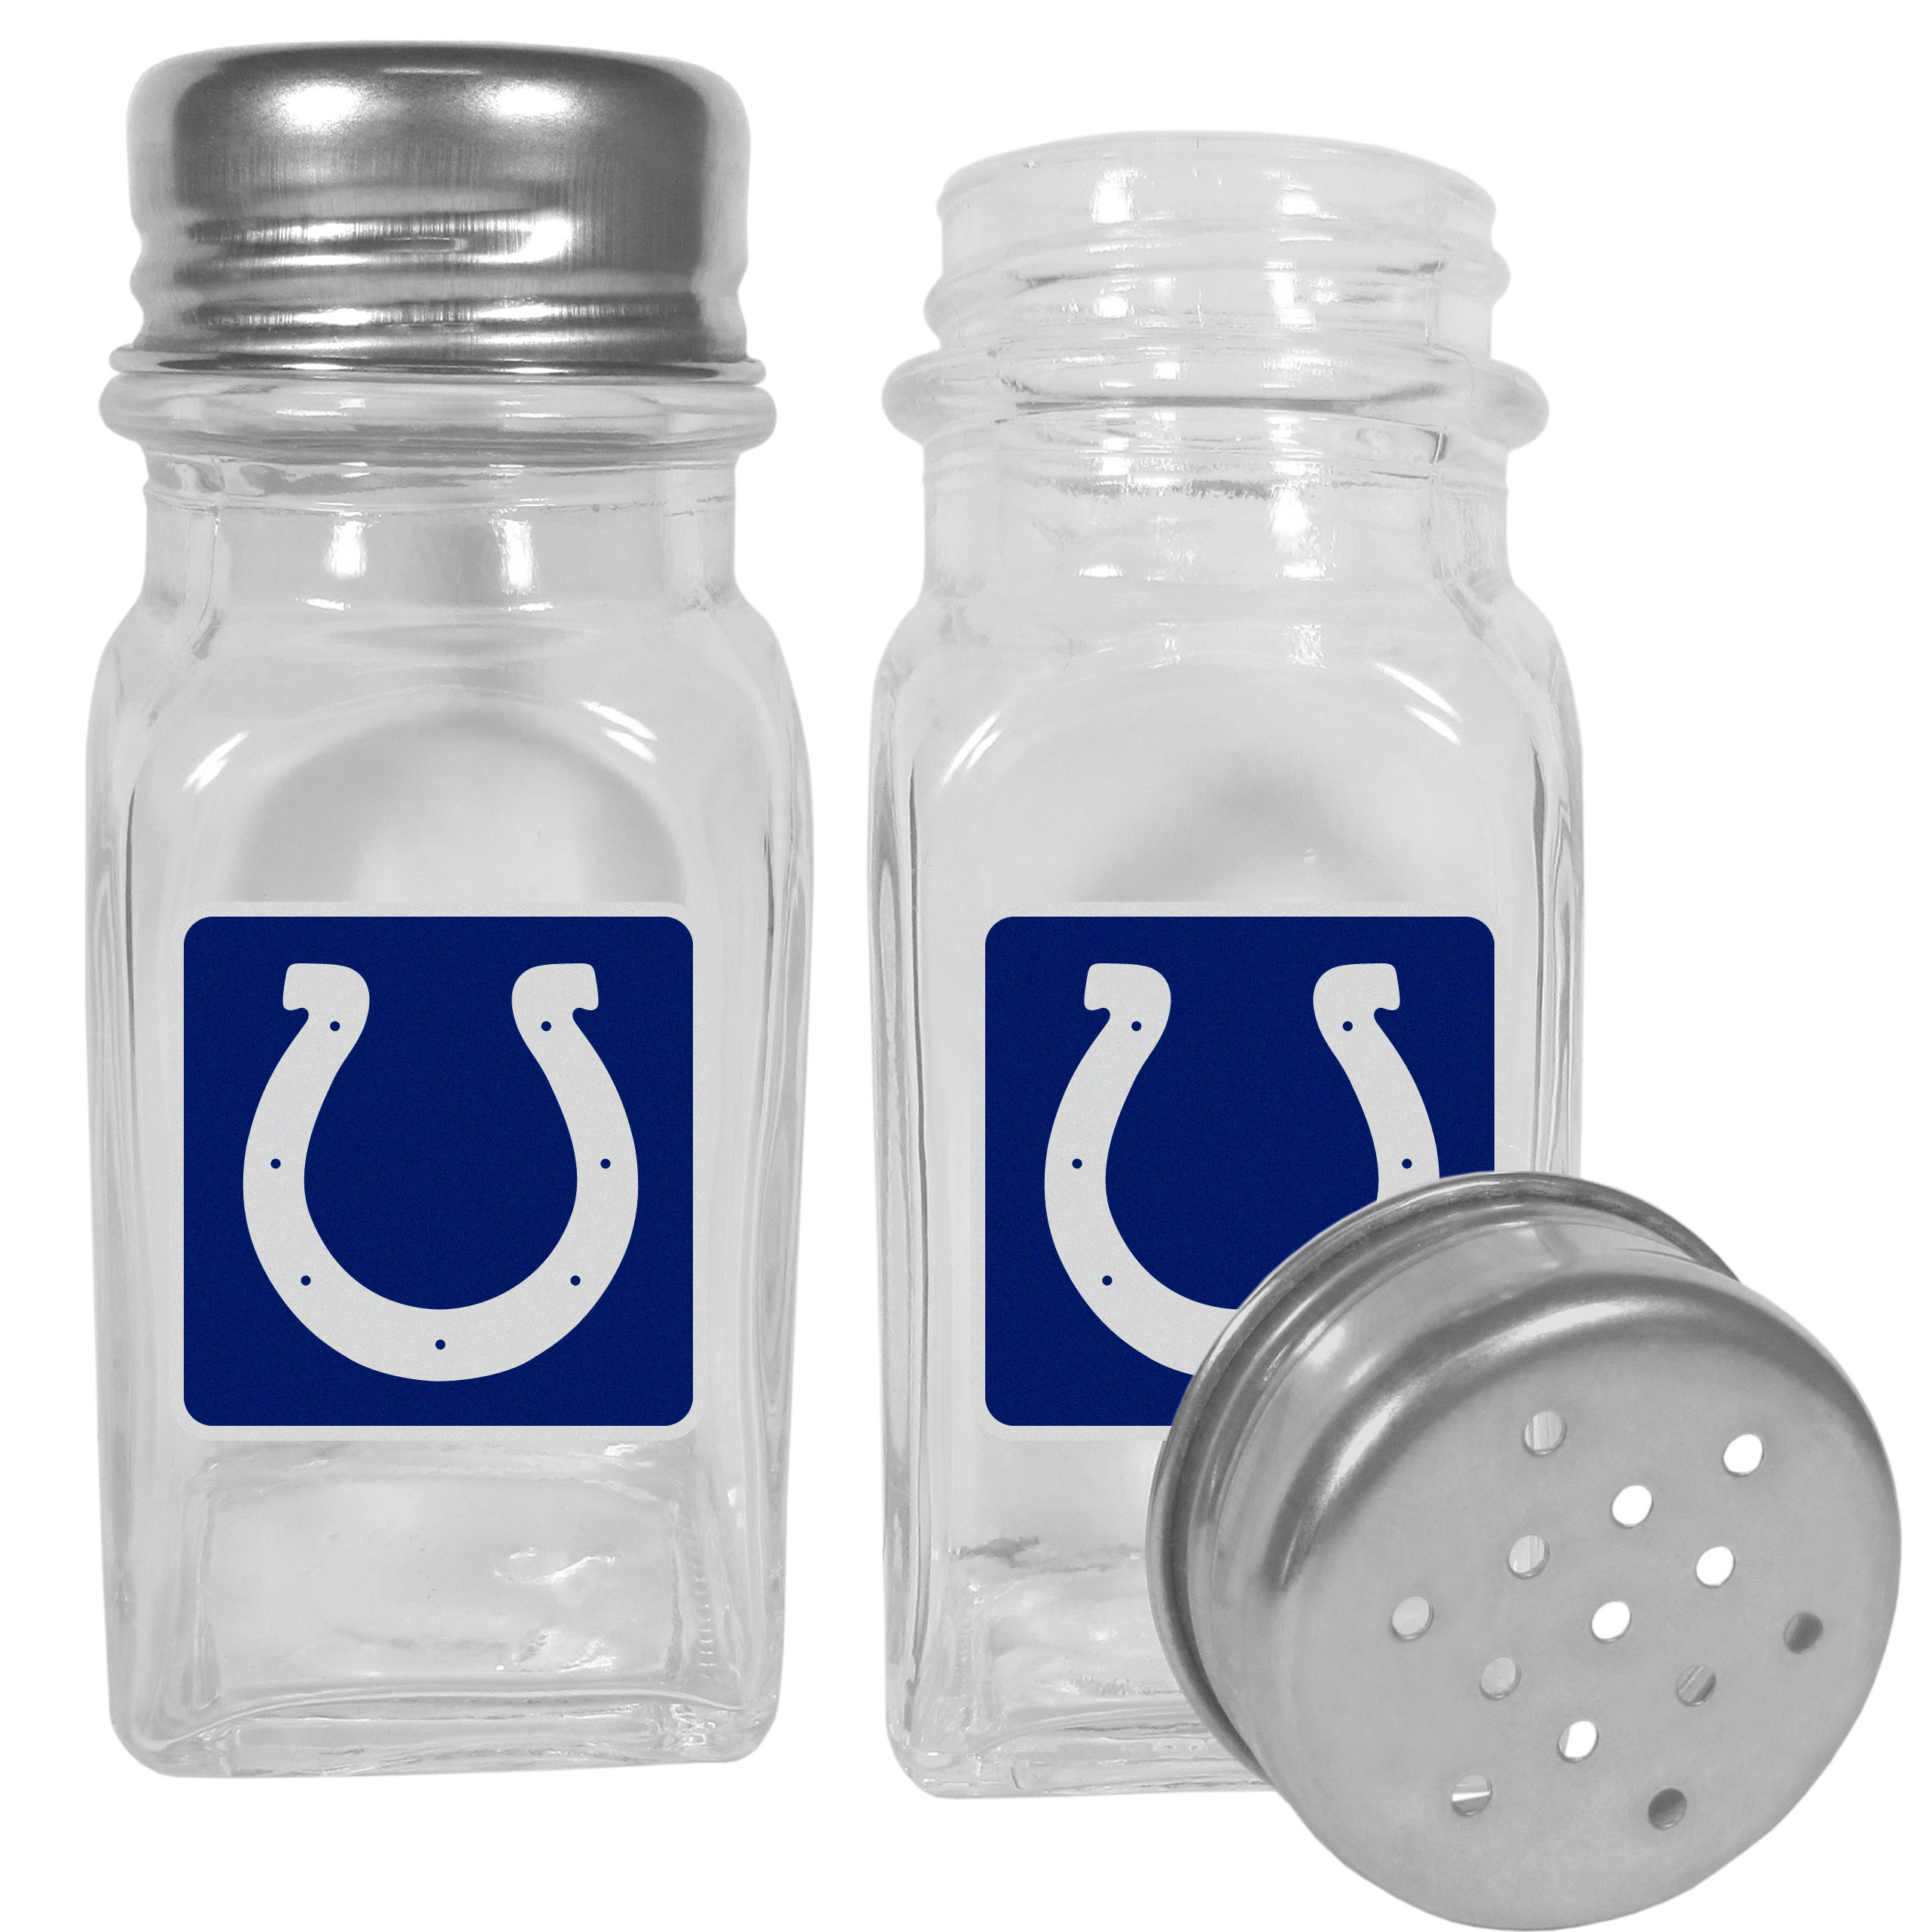 Indianapolis Colts Graphics Salt and Pepper Shaker - No tailgate party is complete without your Indianapolis Colts salt & pepper shakers featuring bright team logos. The diner replica salt and pepper shakers are glass with screw top lids. These team shakers are a great grill accessory whether you are barbecuing on the patio, picnicing or having a game day party.